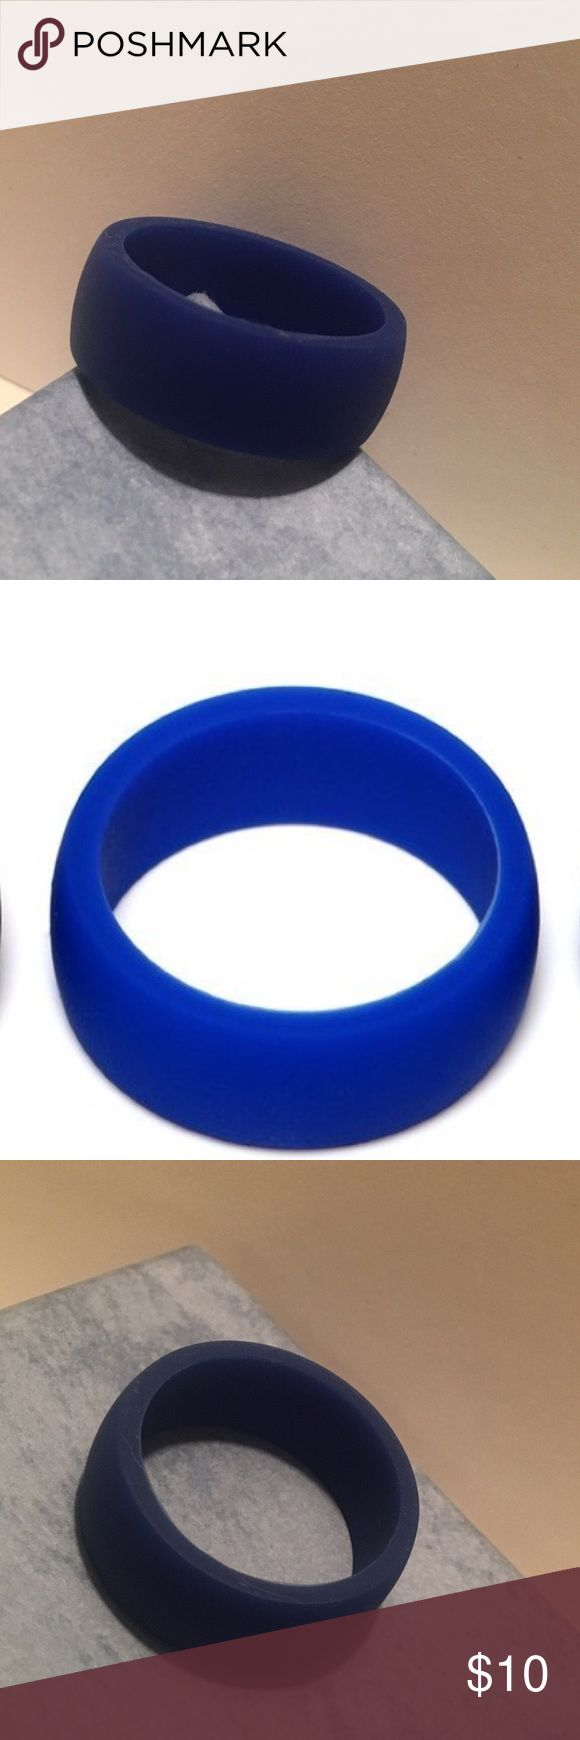 Men's Blue Silicone Sport Wedding Ring, Size 11 Brand new, never worn royal blue silicone wedding ring, size 11. An active life is full of lifting, climbing, grasping, running, sweating, you bend, jump, stretch, to avoid damaging the traditional metal ring or seriously injuring your finger, XLSource silicone ring is a great choice.  Hypoallergenic, non-conductive, non-porous, non-toxic, medical grade silicone rubber band. XL Source Accessories Jewelry